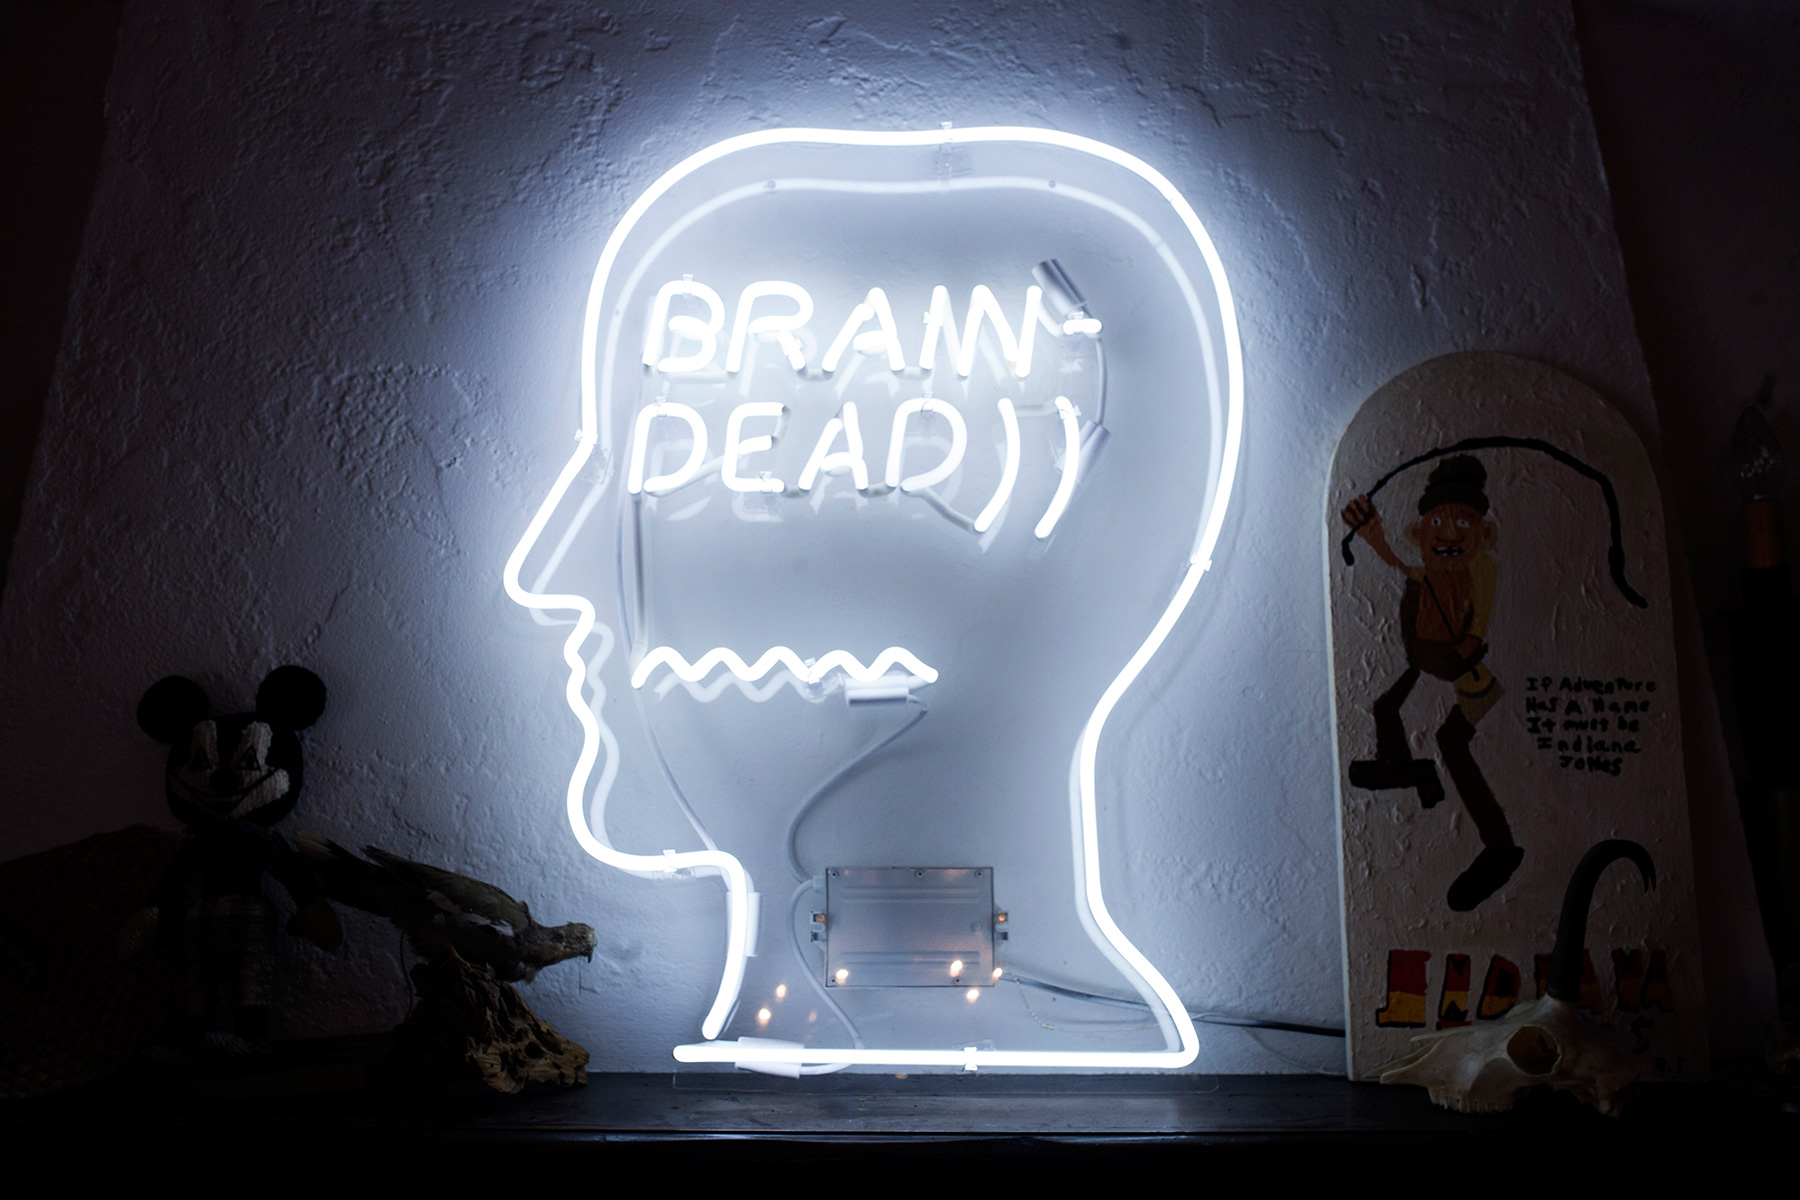 Brain Dead Keeping The Graphic Tee S Underground Traditions Alive